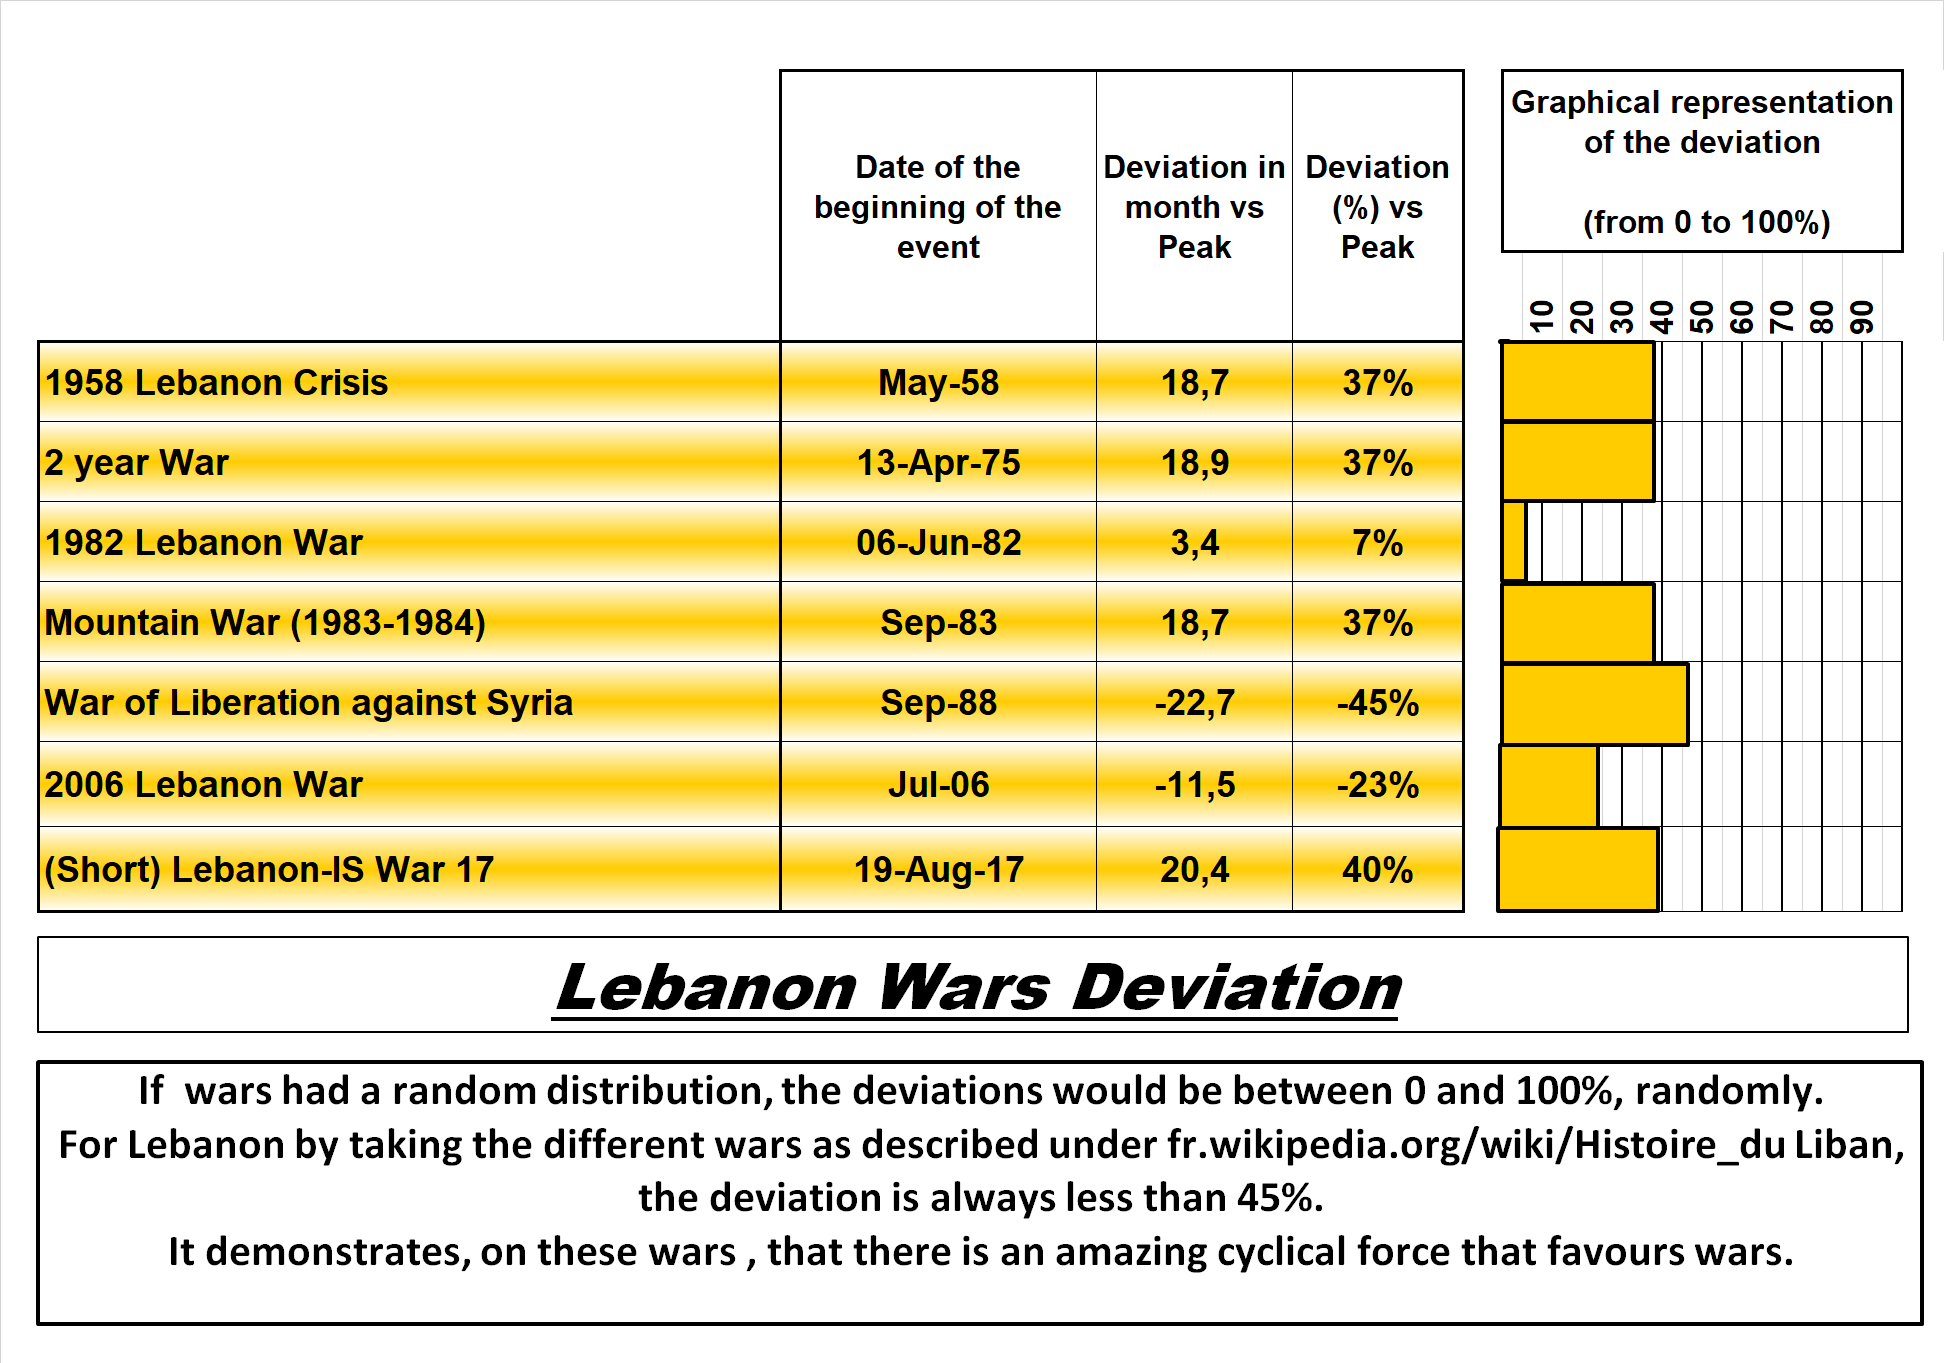 Lebanon Wars Deviation